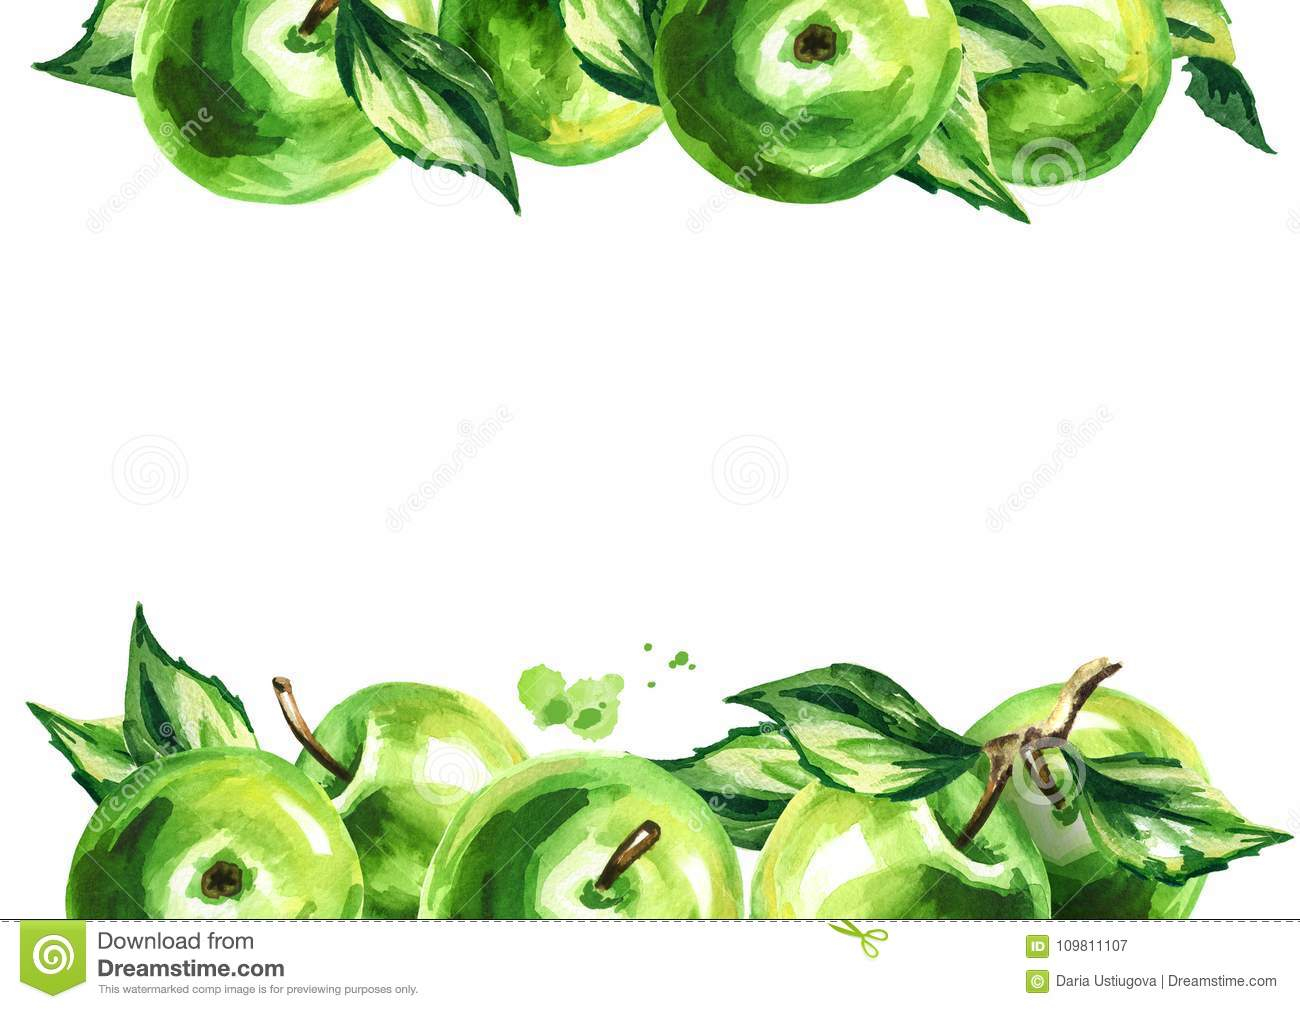 Green apples and leaves background, Watercolor hand drawn illustration